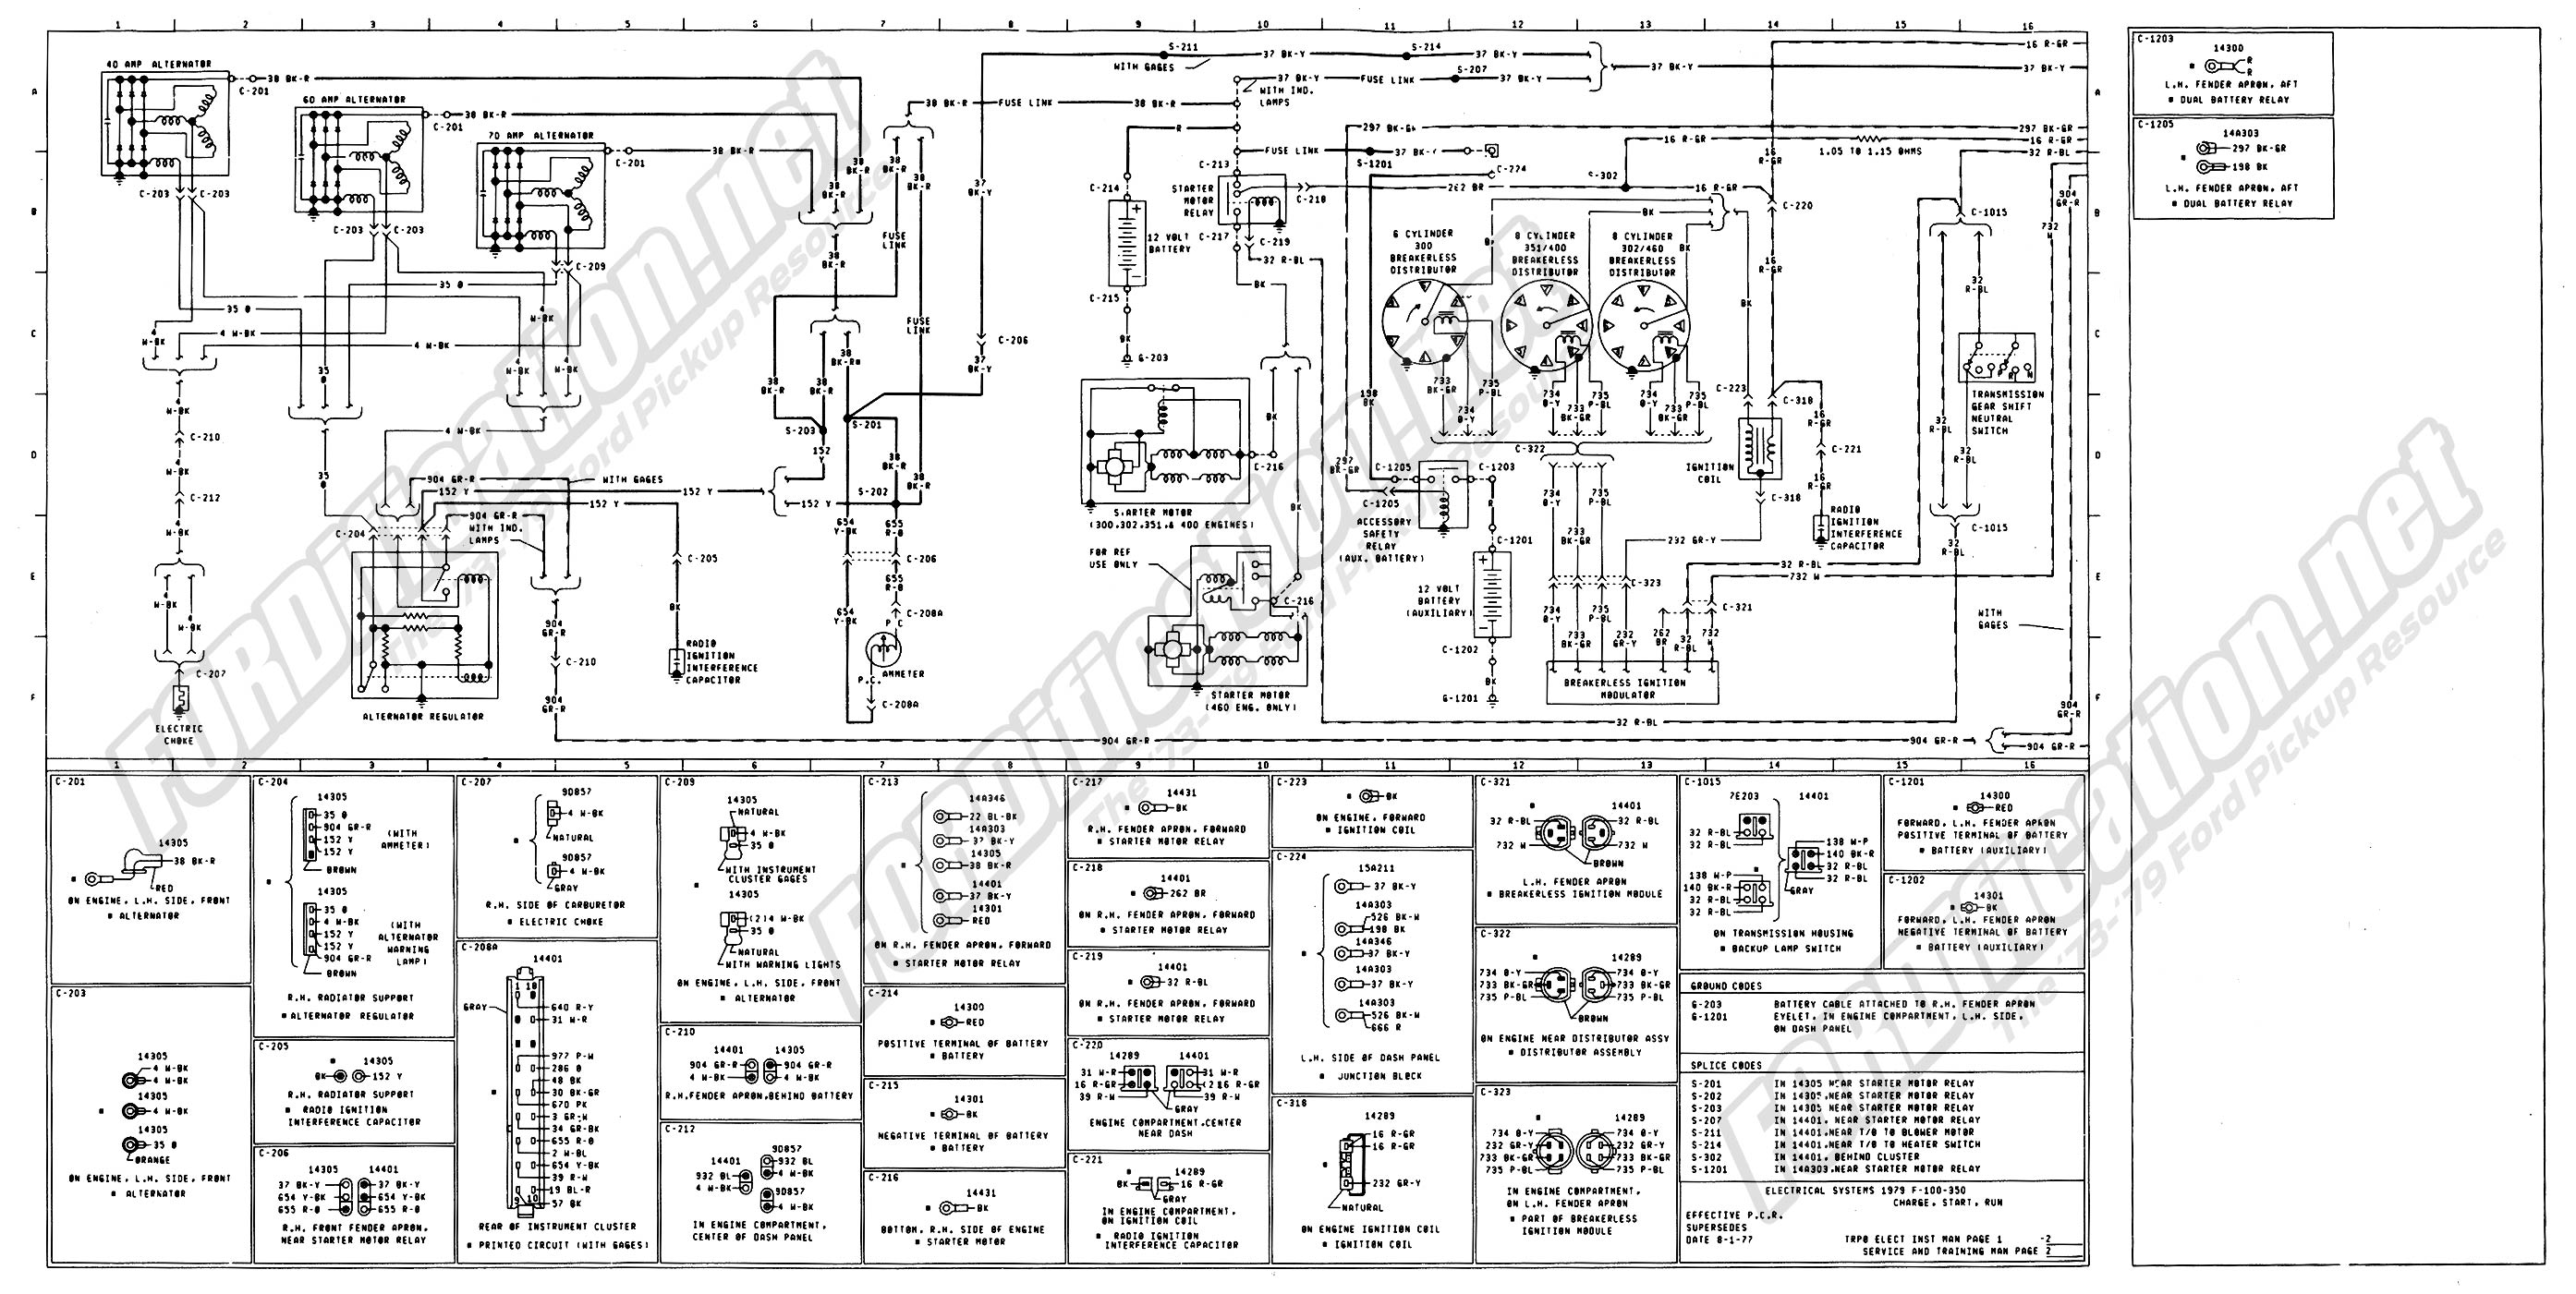 wiring_79master_2of9 1973 1979 ford truck wiring diagrams & schematics fordification net 1999 ford f350 wiring diagram at aneh.co